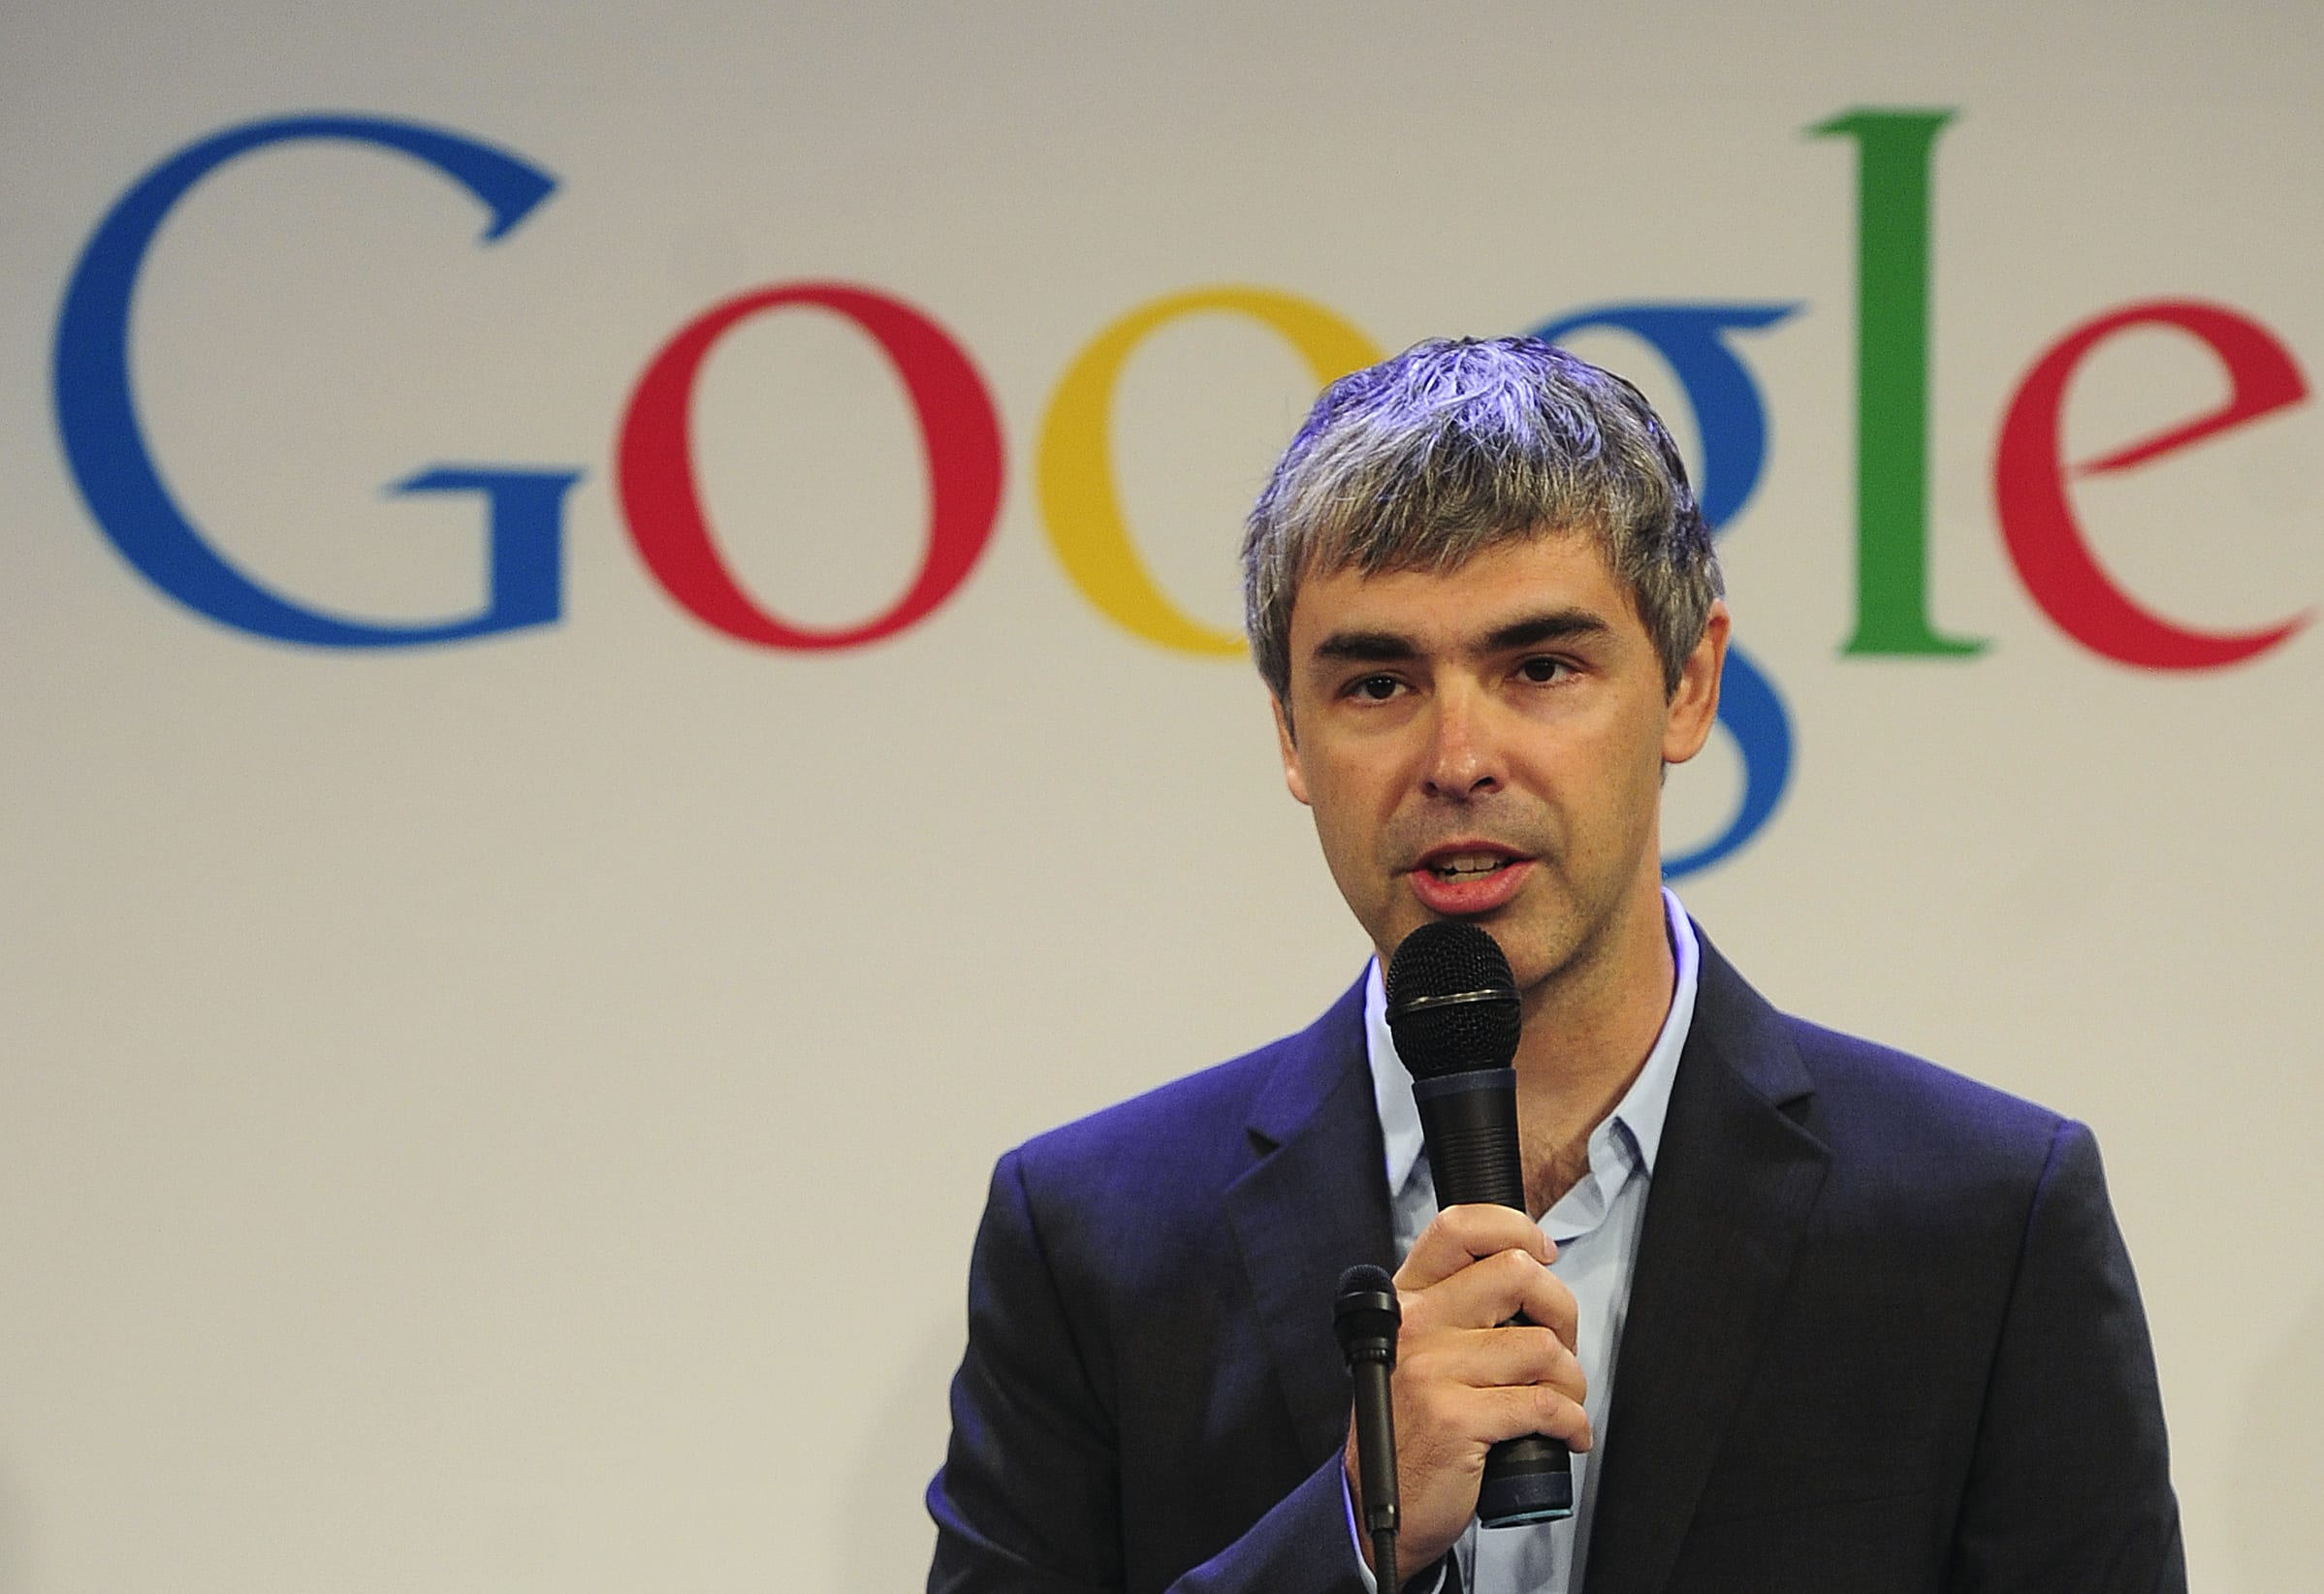 Larry Page: Google Co-Founder And Former CEO Of Alphabet